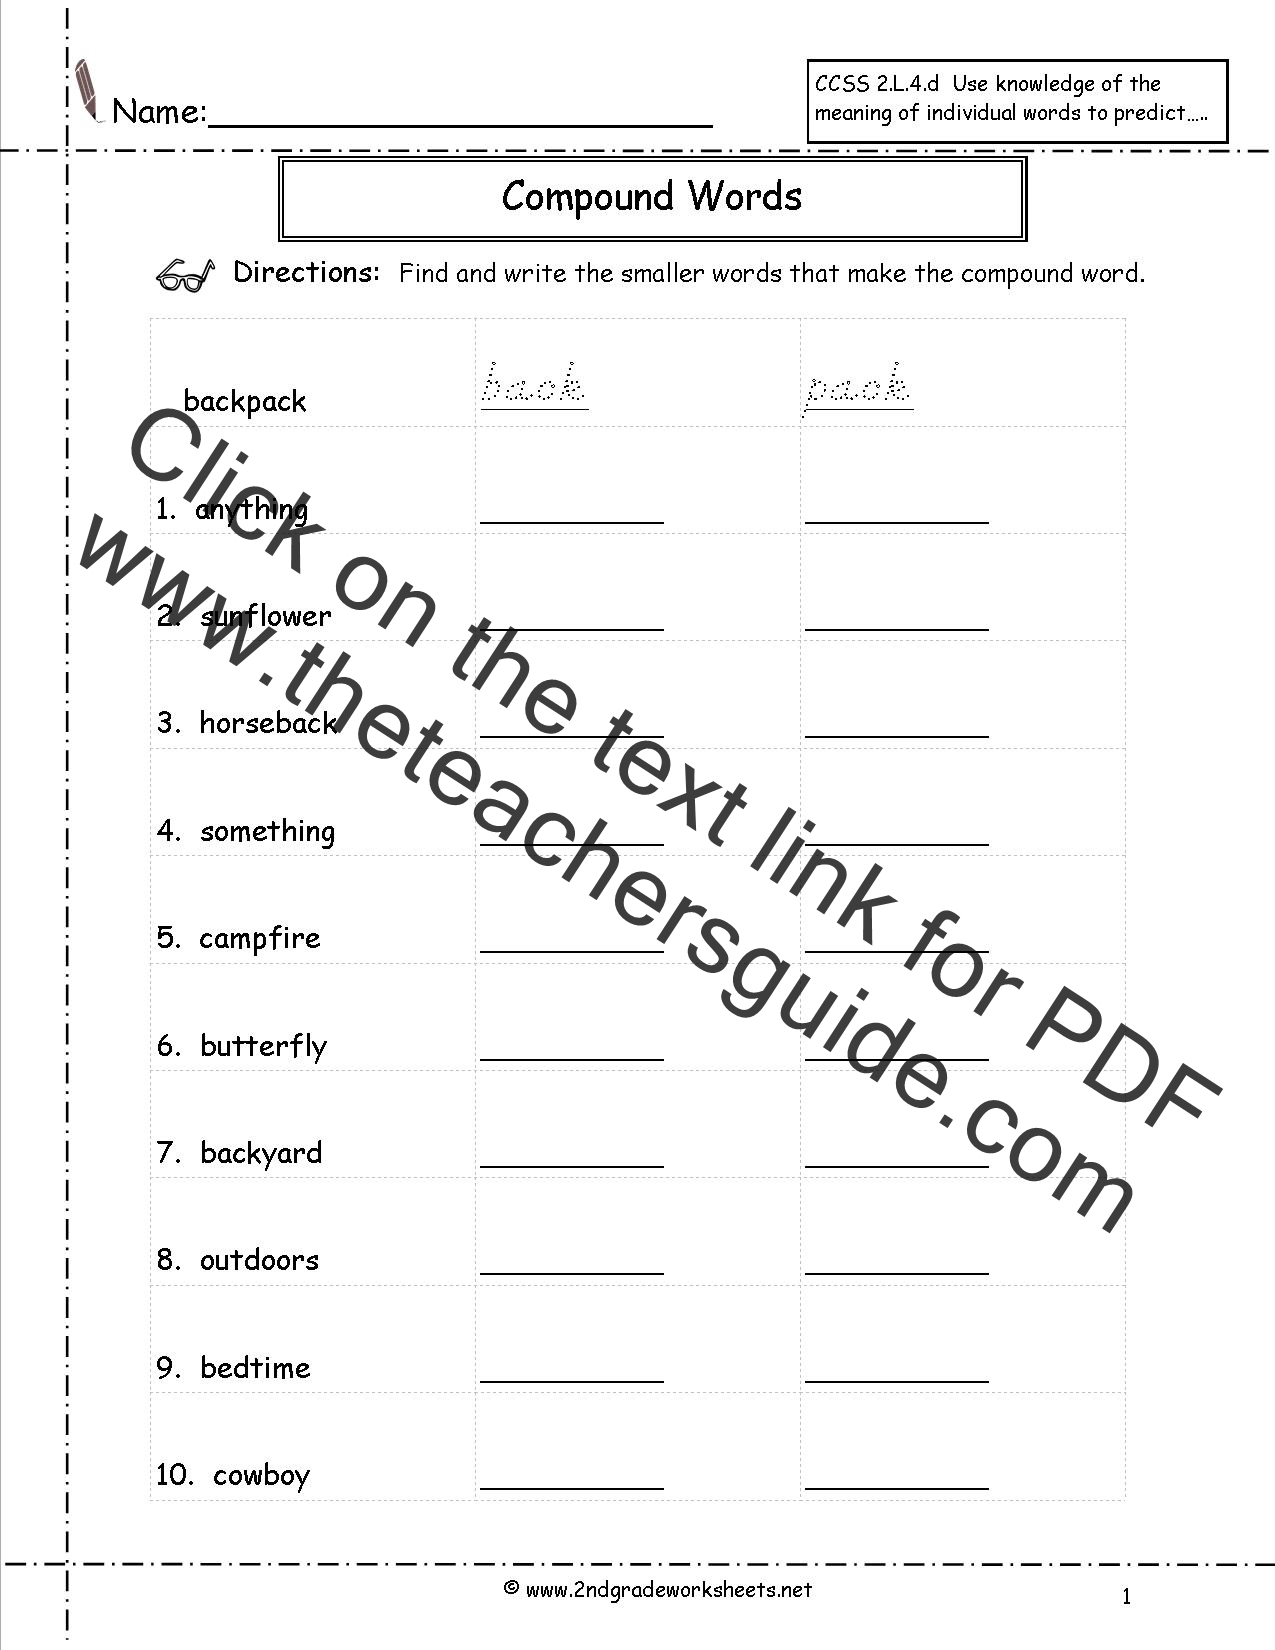 Worksheets Worksheets For Second Grade free languagegrammar worksheets and printouts compound words worksheets